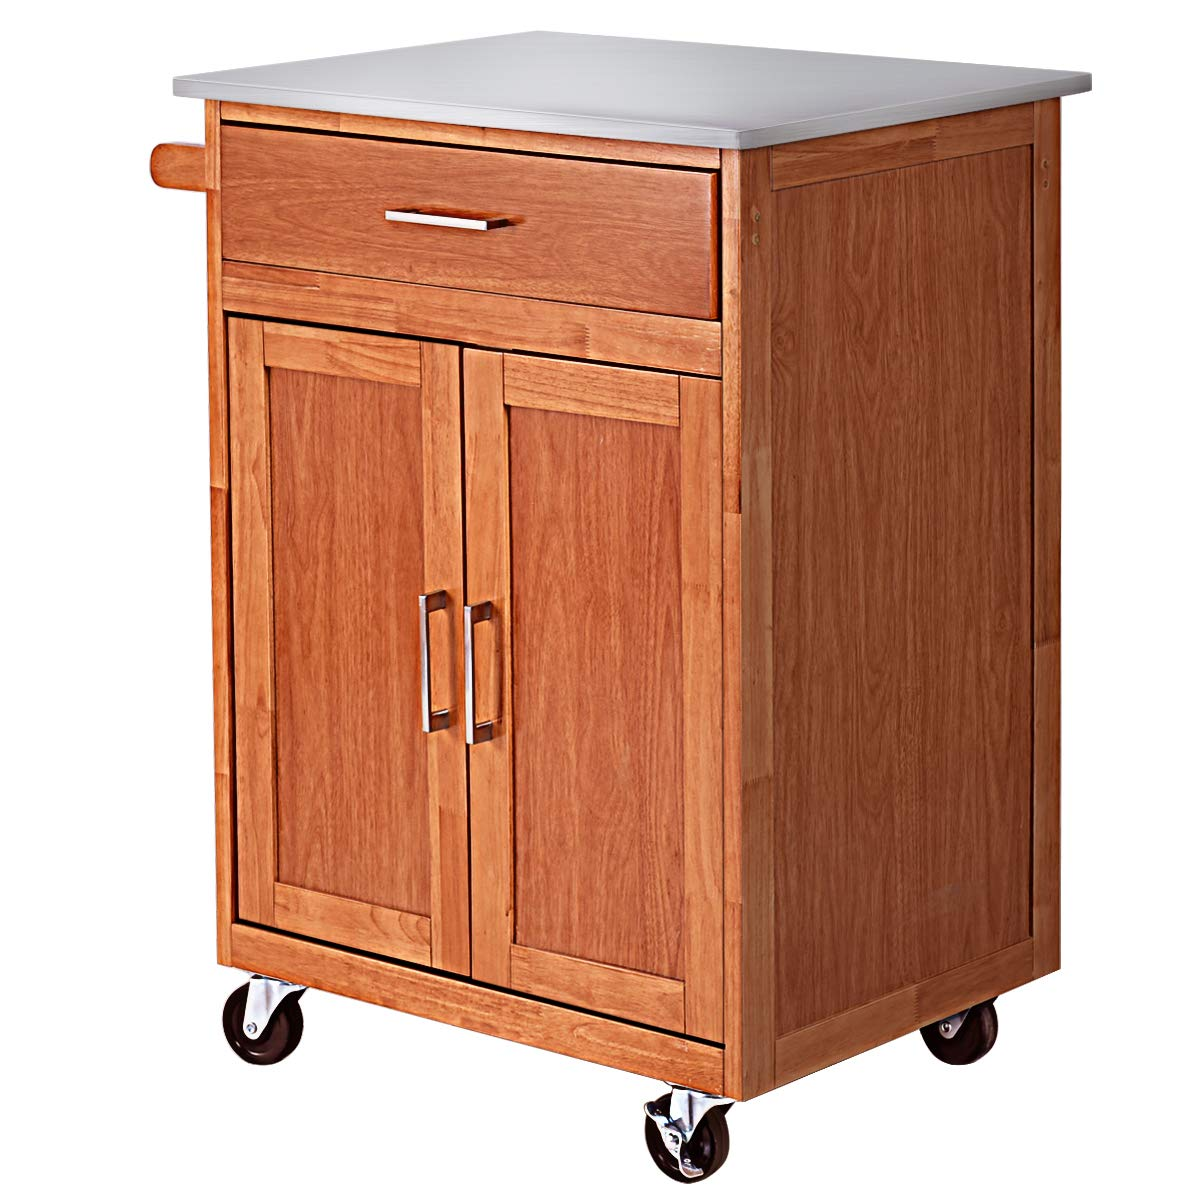 Giantex Wood Kitchen Trolley Cart Rolling Kitchen Island Cart with Stainless Steel Top Storage Cabinet Drawer and Towel Rack by Giantex